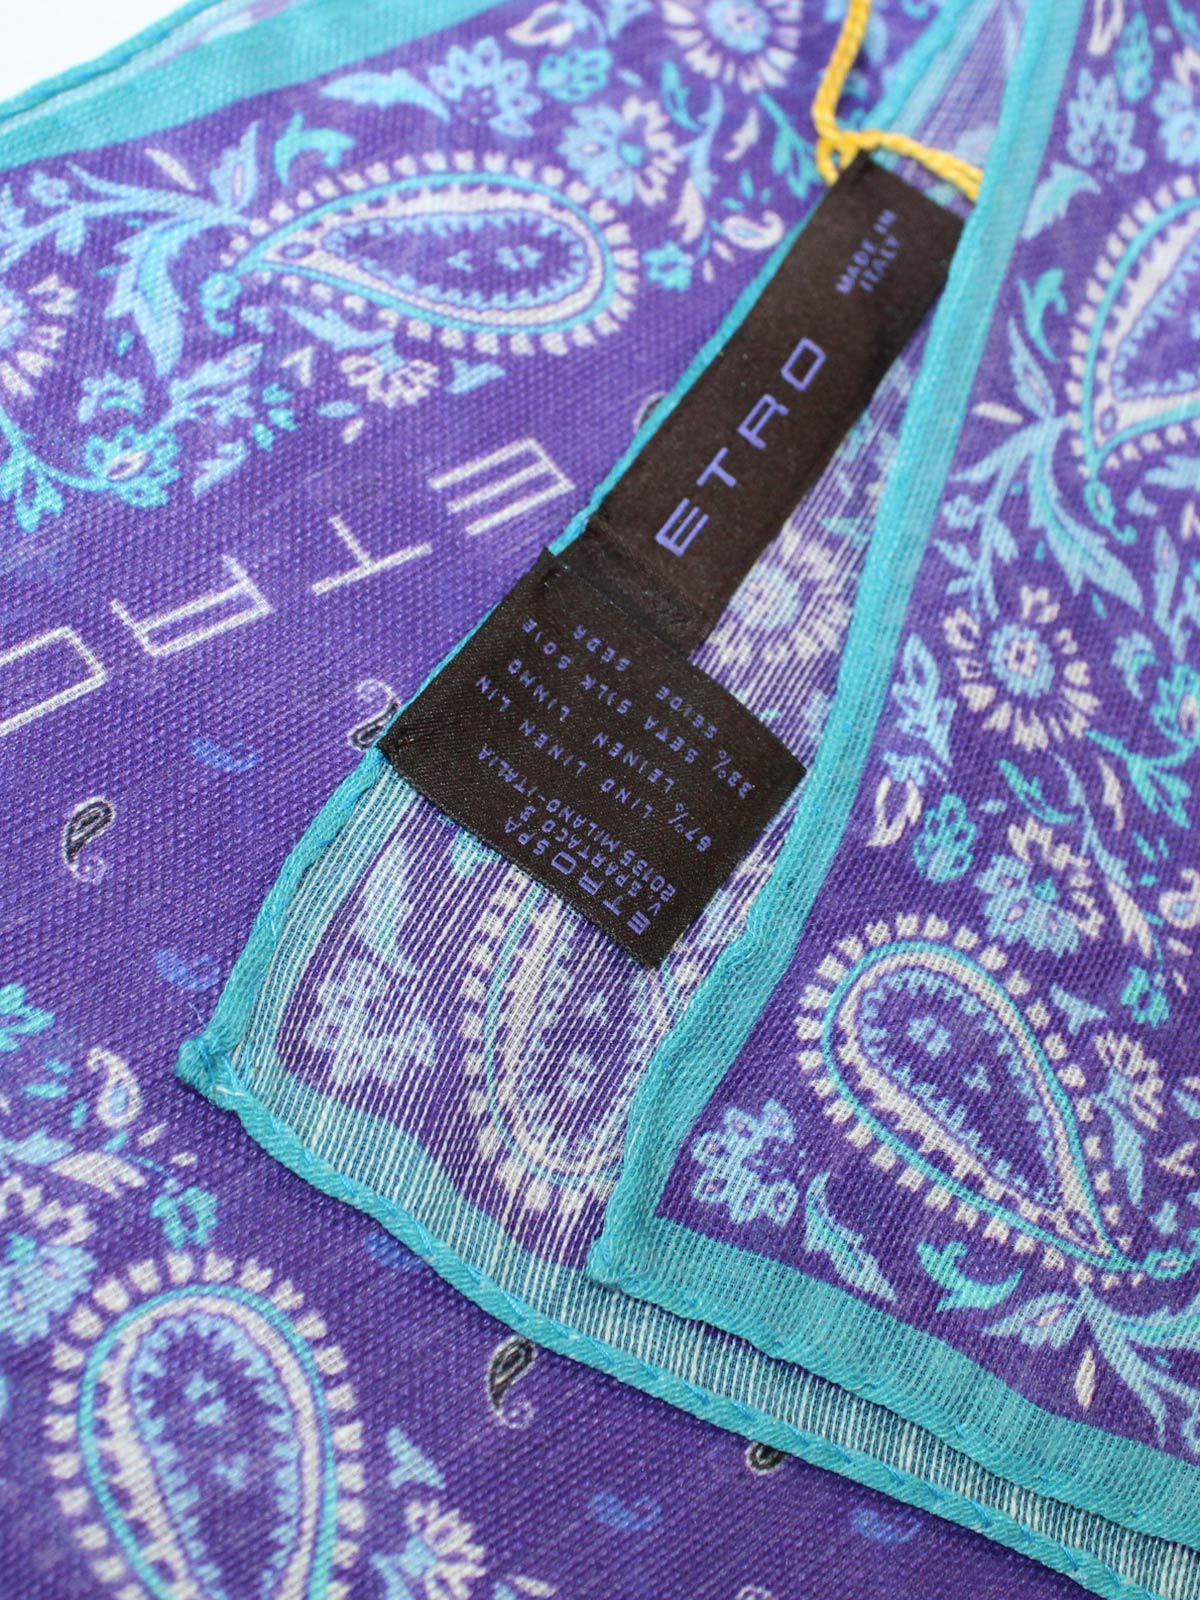 Etro Pocket Square Purple Aqua Linen Silk